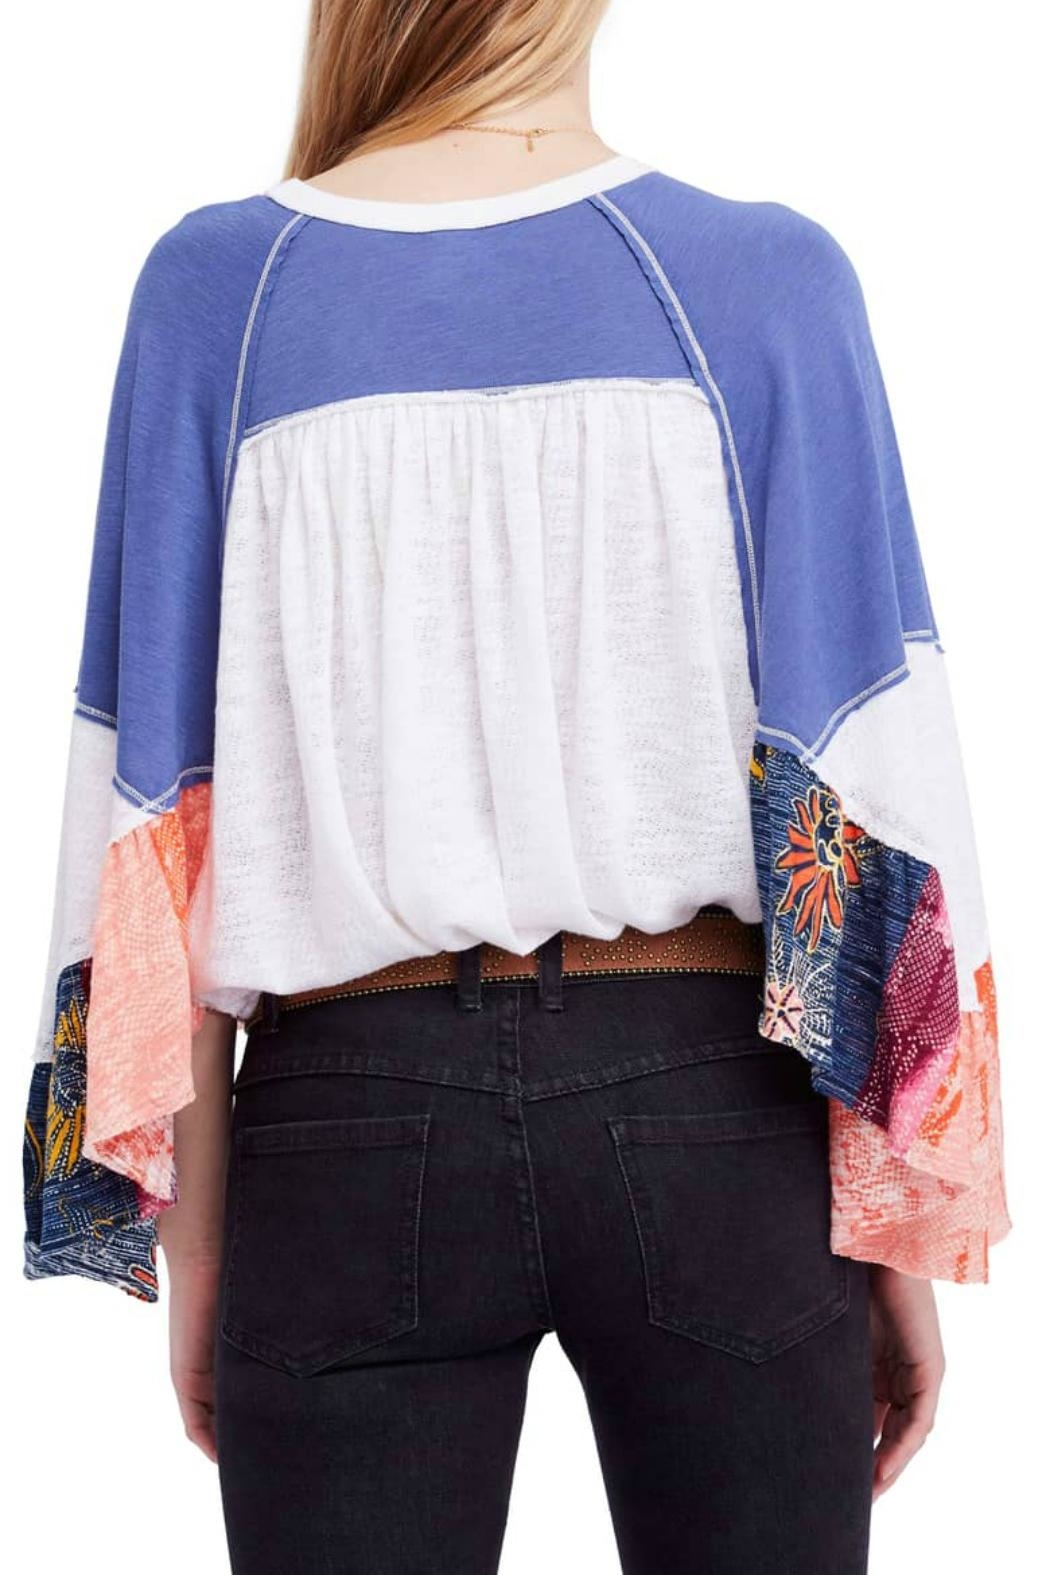 Free People Fever Top - Side Cropped Image